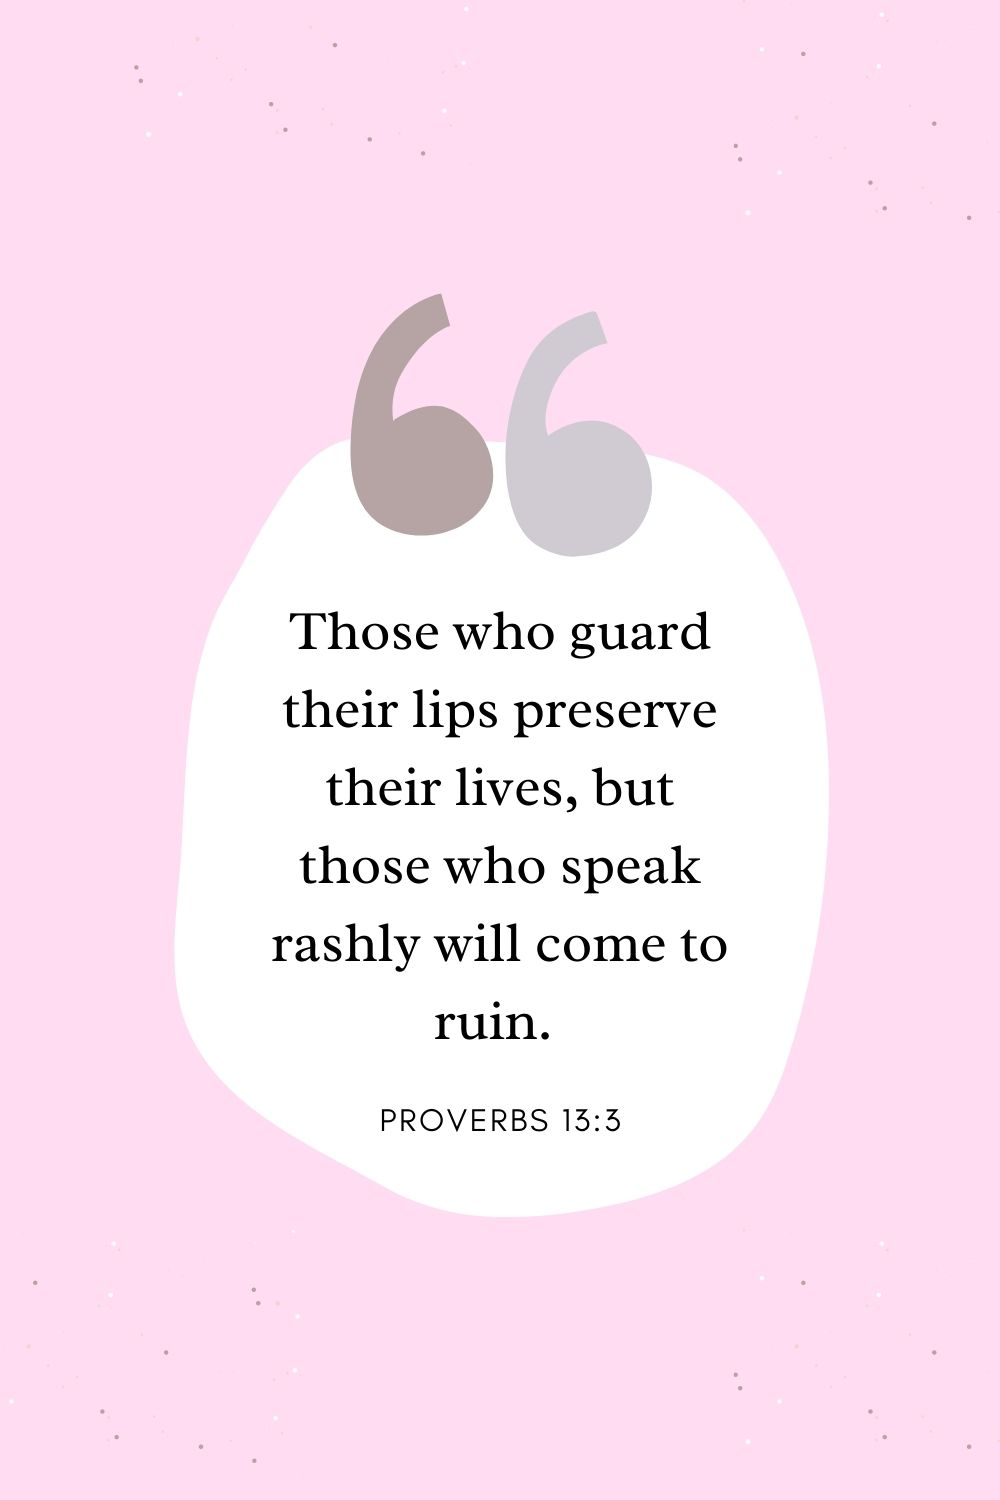 Those who guard their lips preserve their lives, but those who speak rashly will come to ruin. Proverbs 13:3